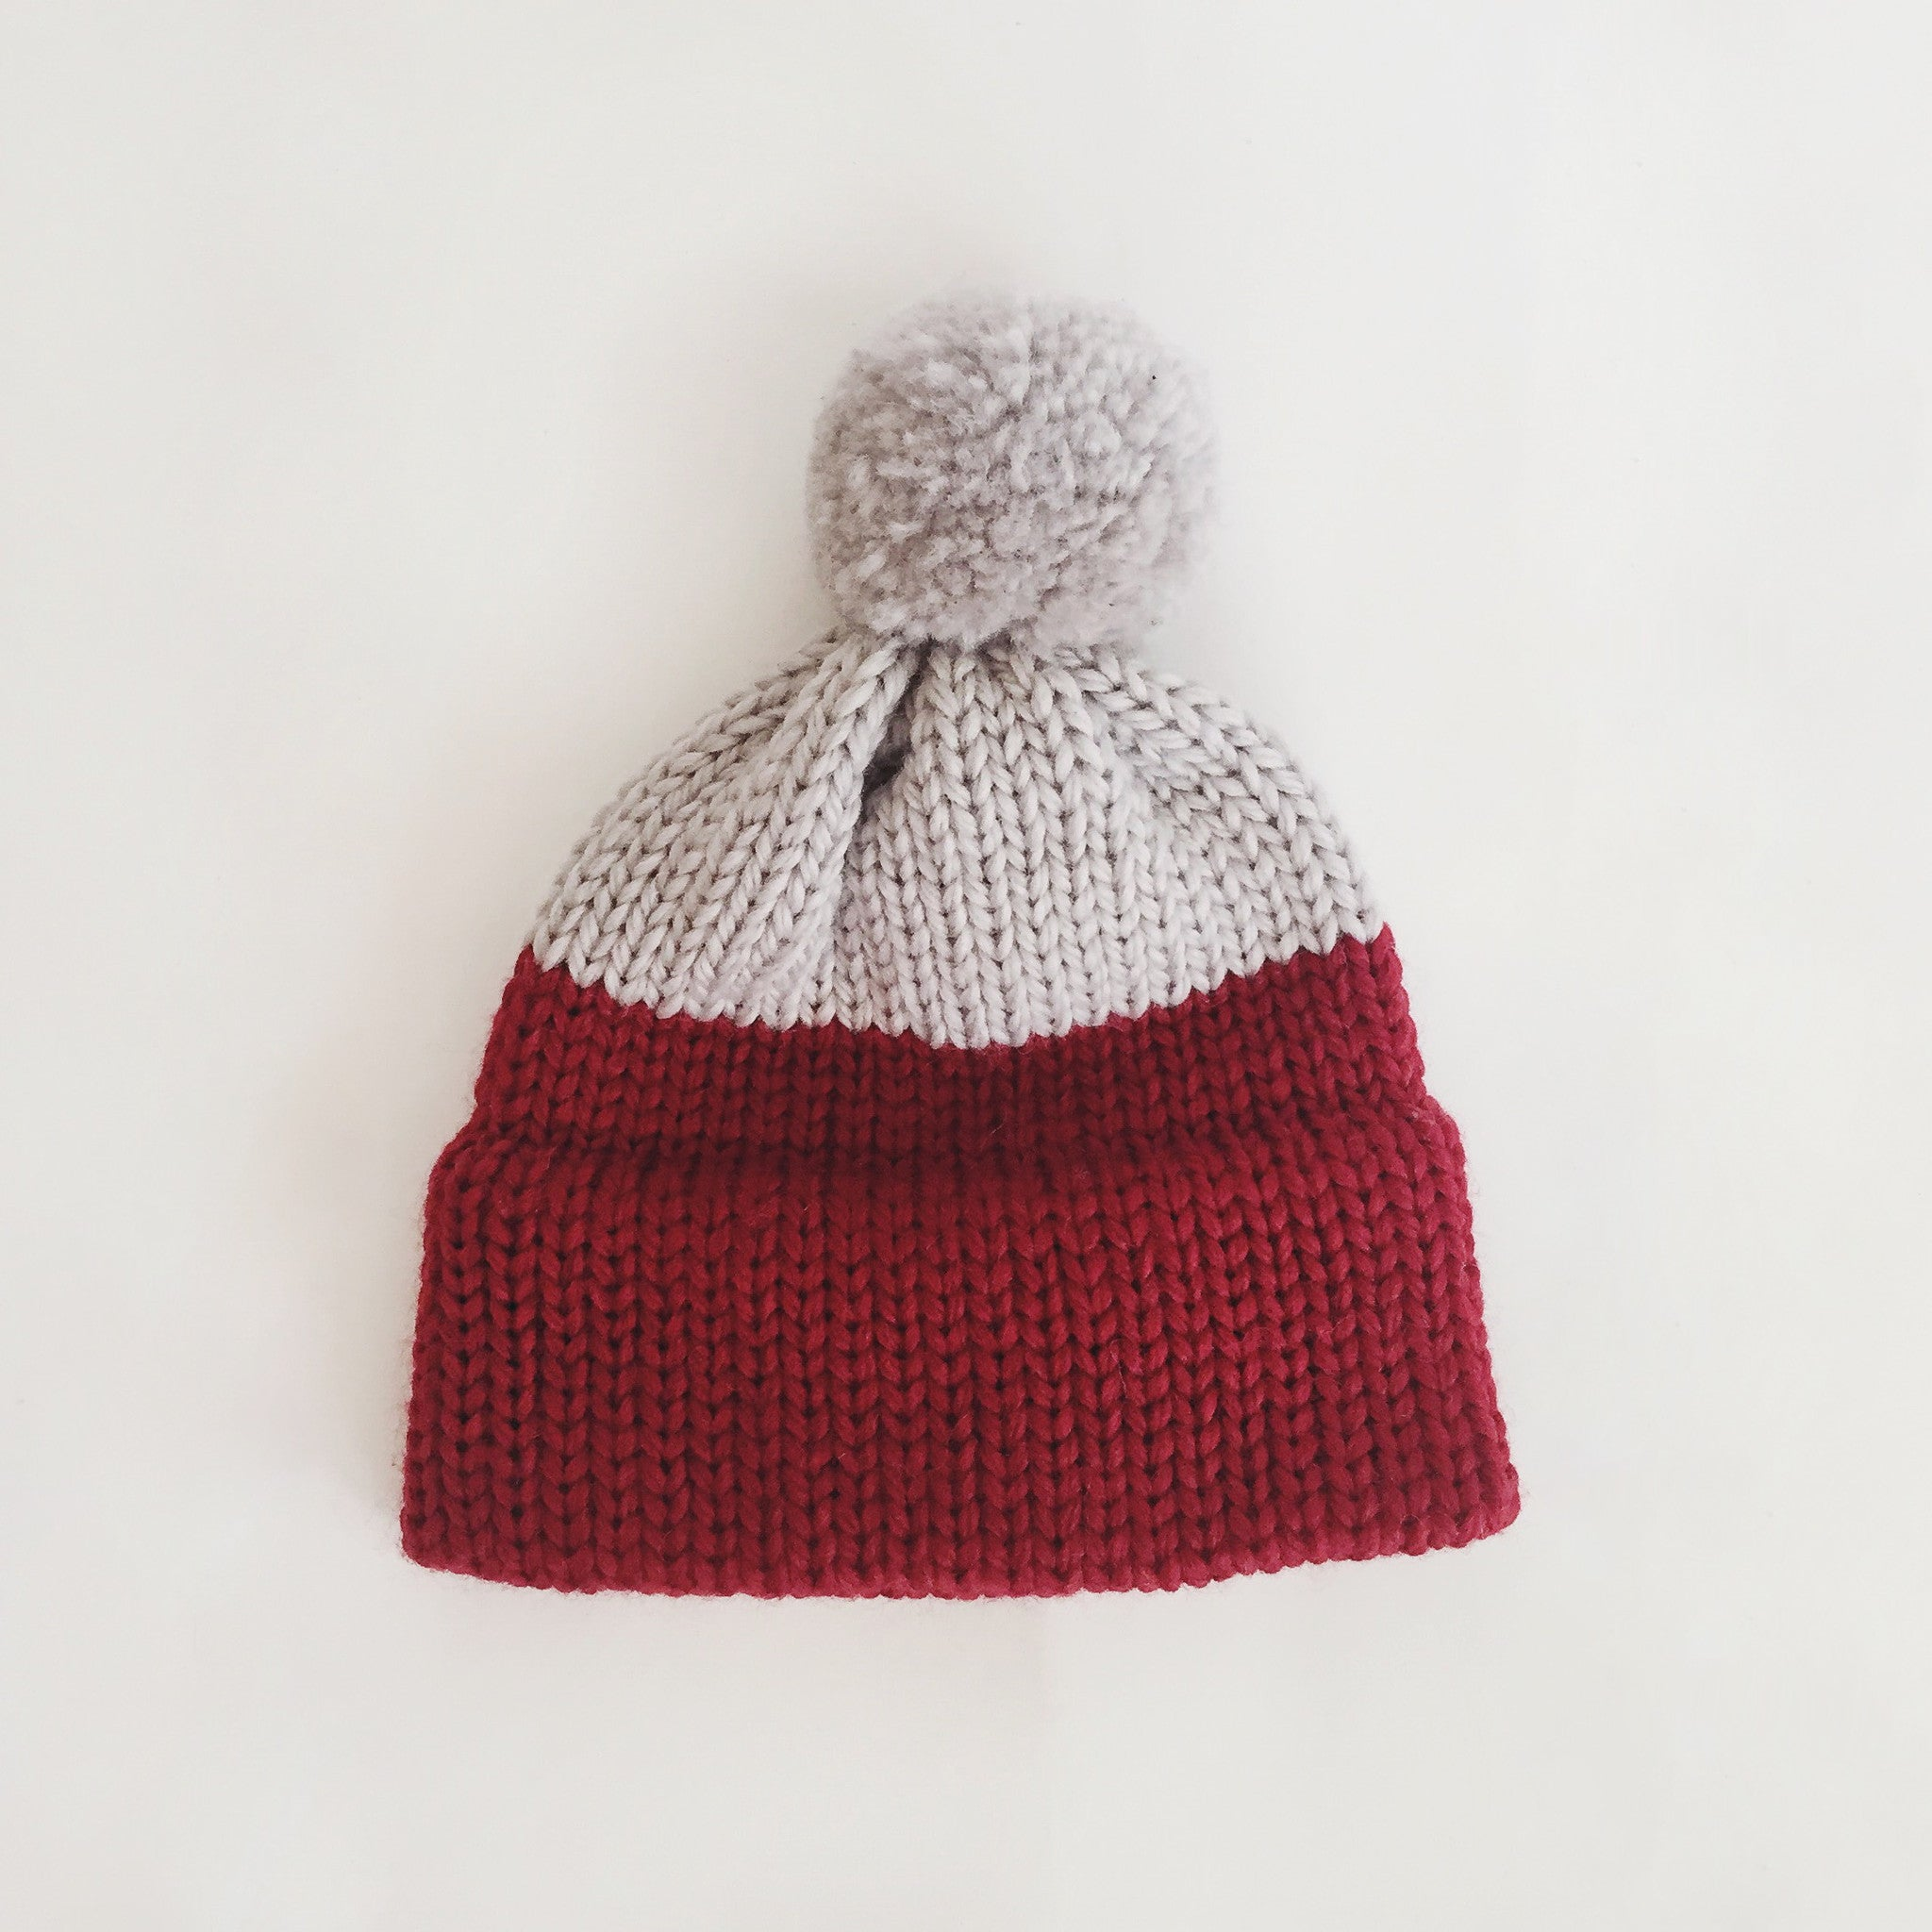 Heirloom Wool Hat - Maroon